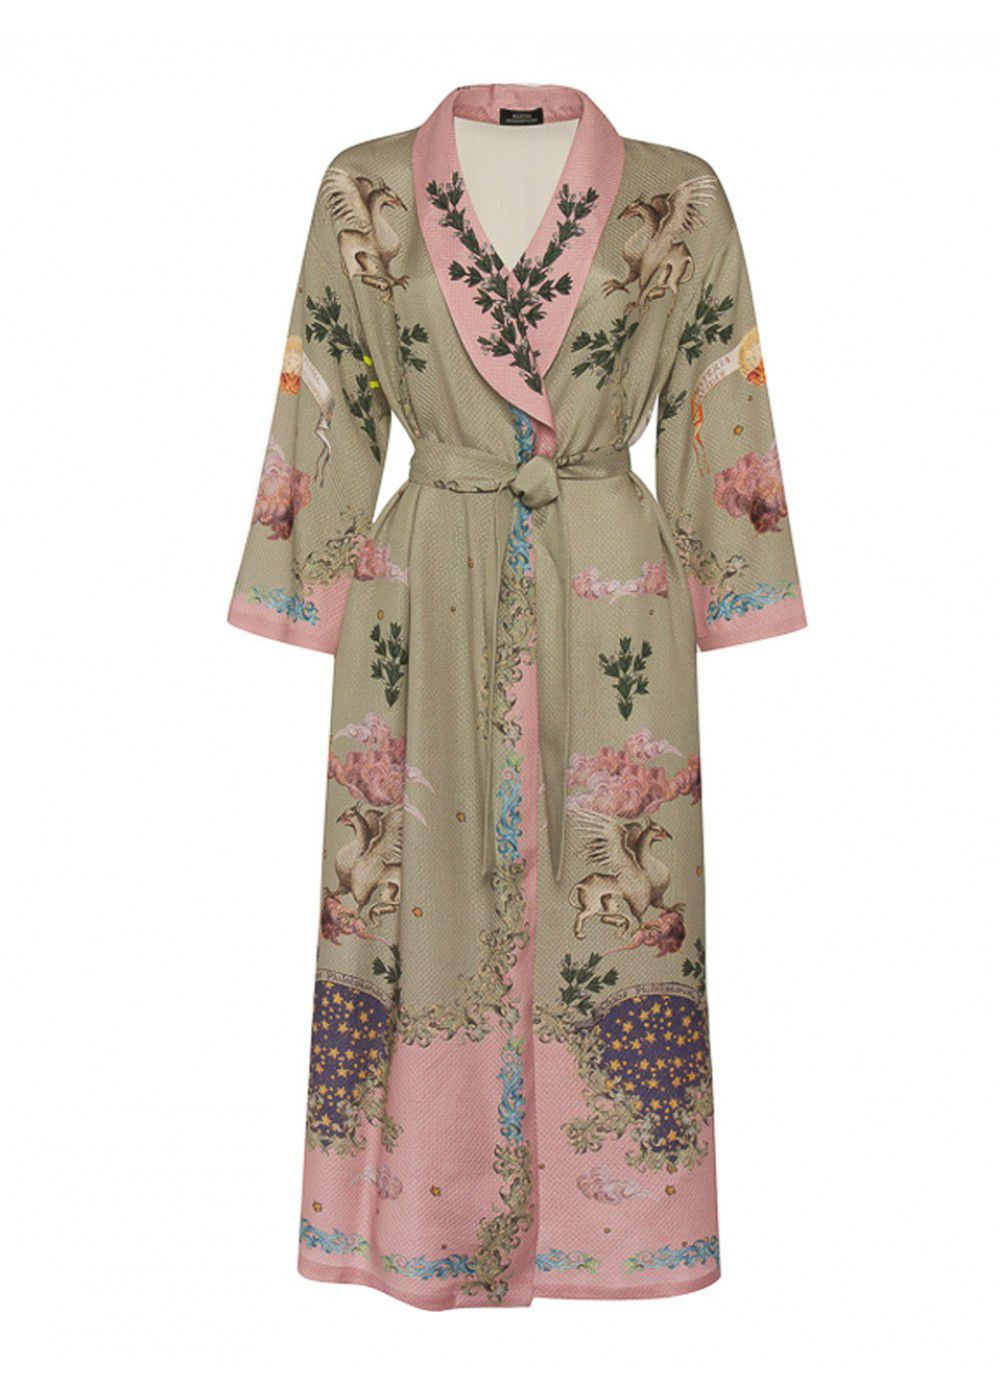 Alena Akhmadullina Robe Dress